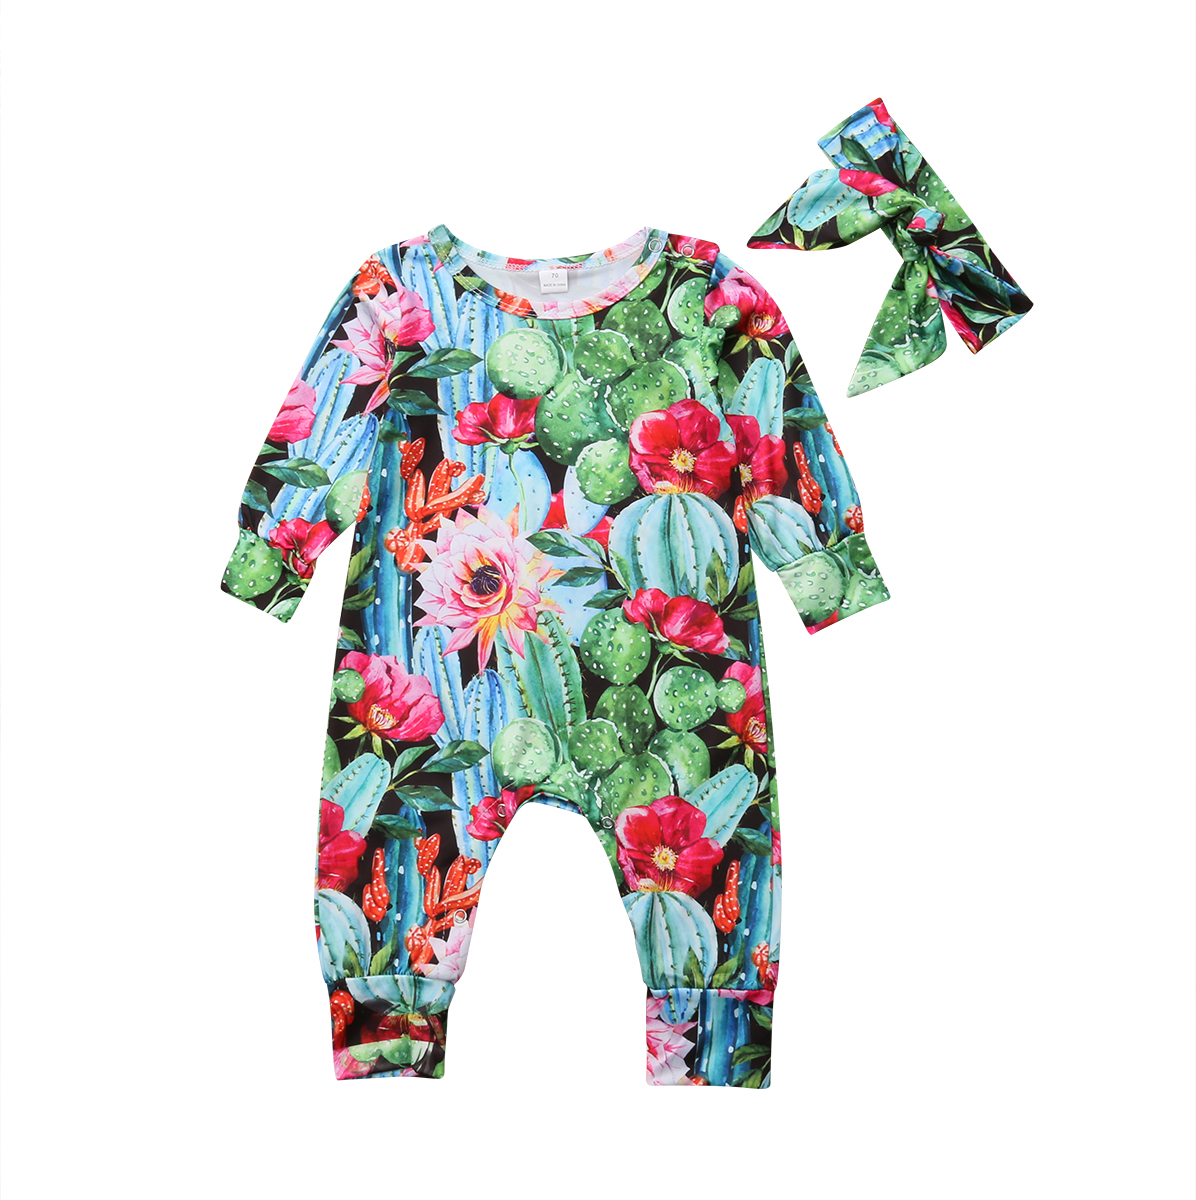 Infant Baby Girls Cactus Printing One-piece Long Sleeve   Romper   Babies Floral Jumpsuit Headband Clothes Outfits Sets